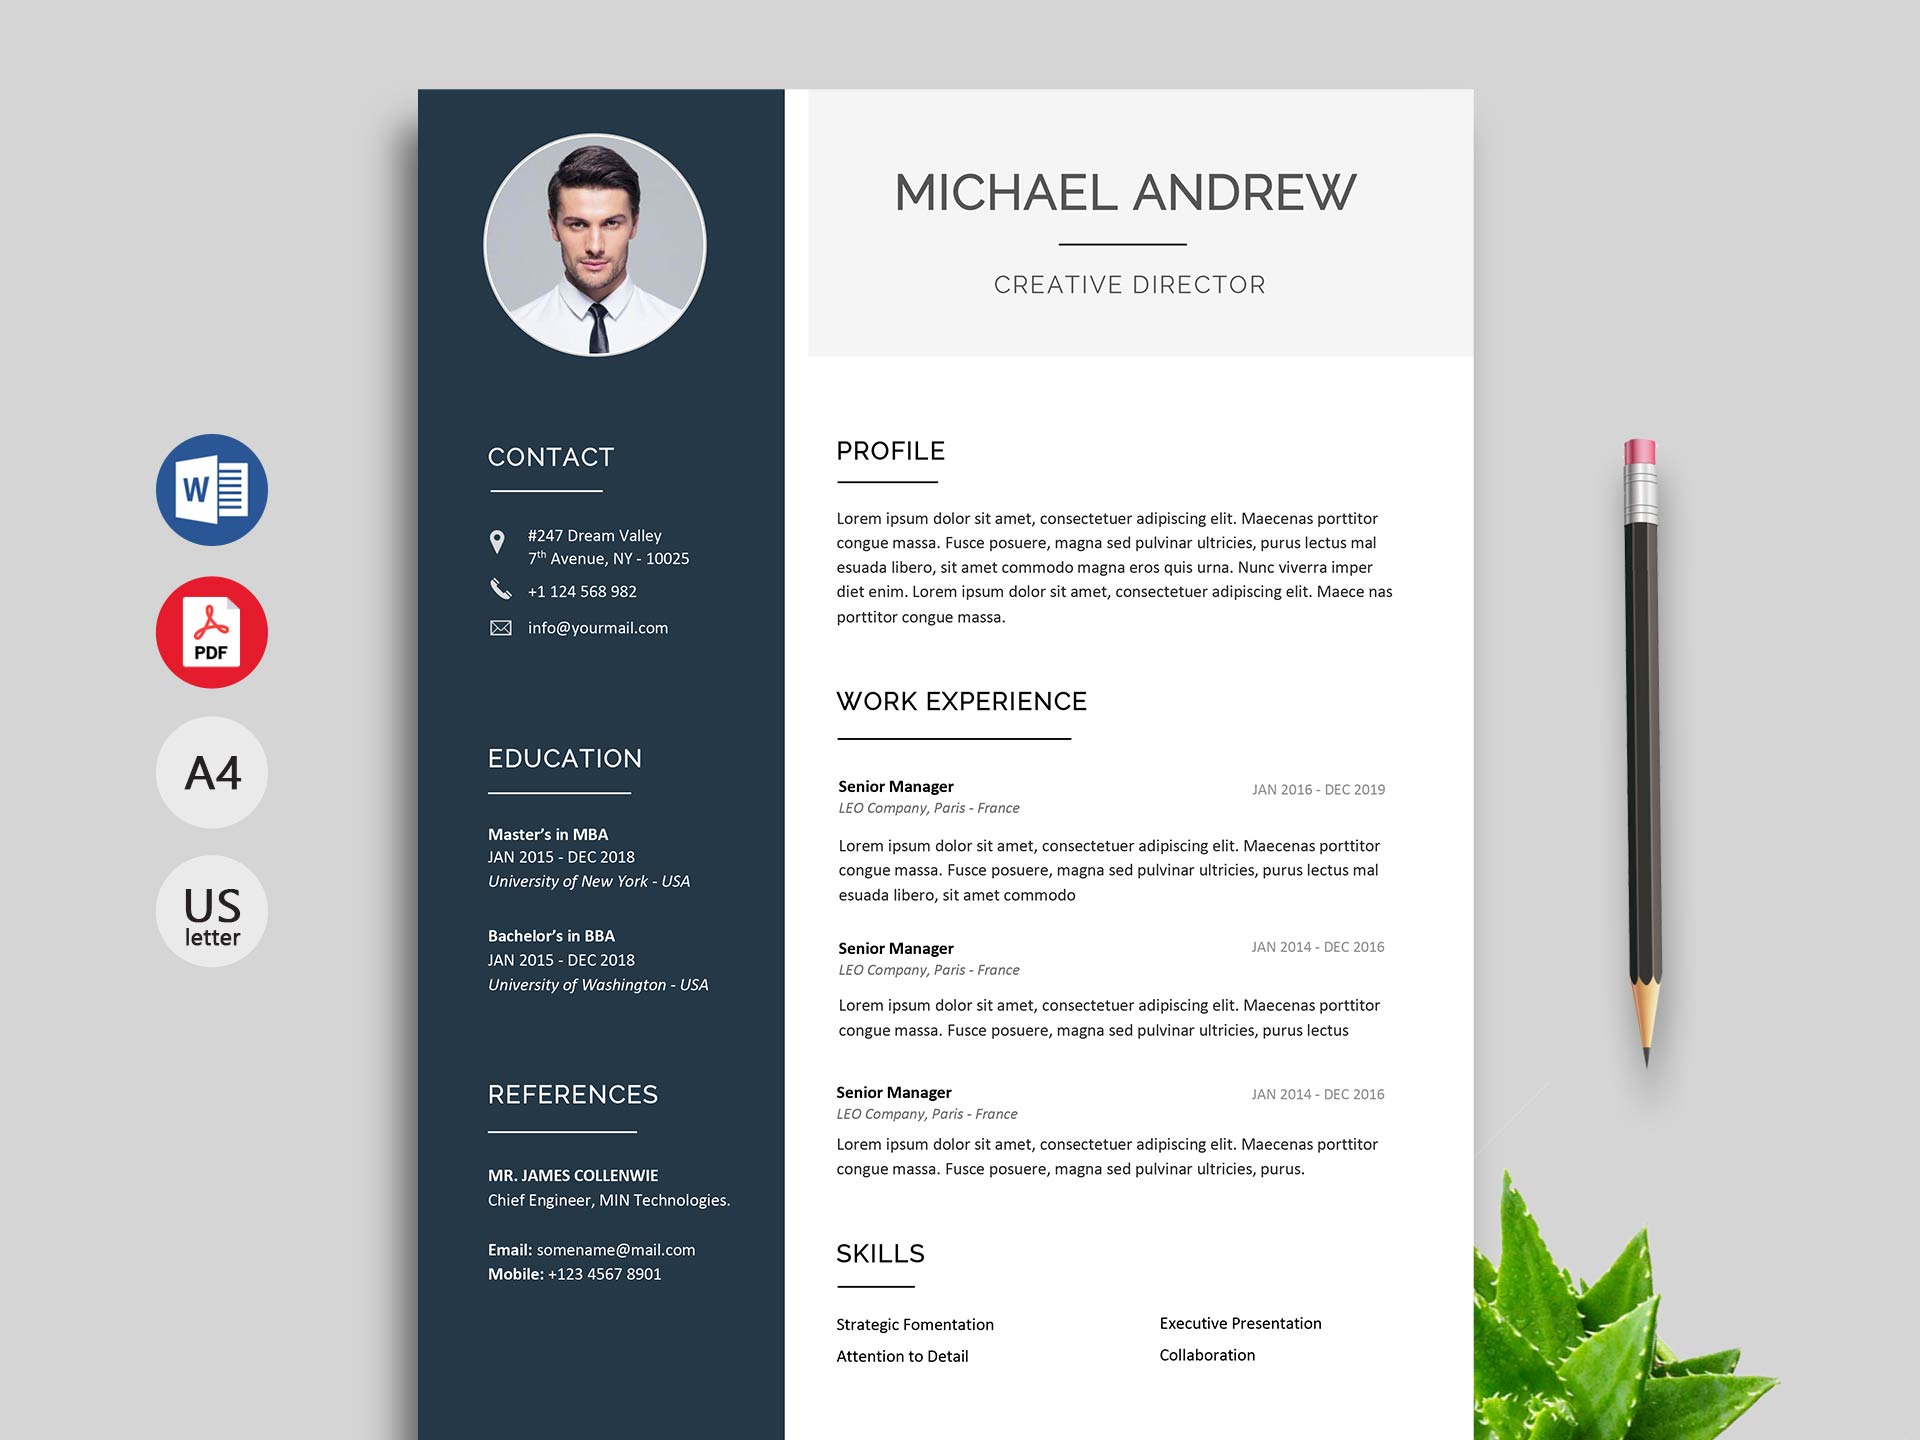 free resume cv templates in word format resumekraft current prime template french example Resume Current Resume Format 2020